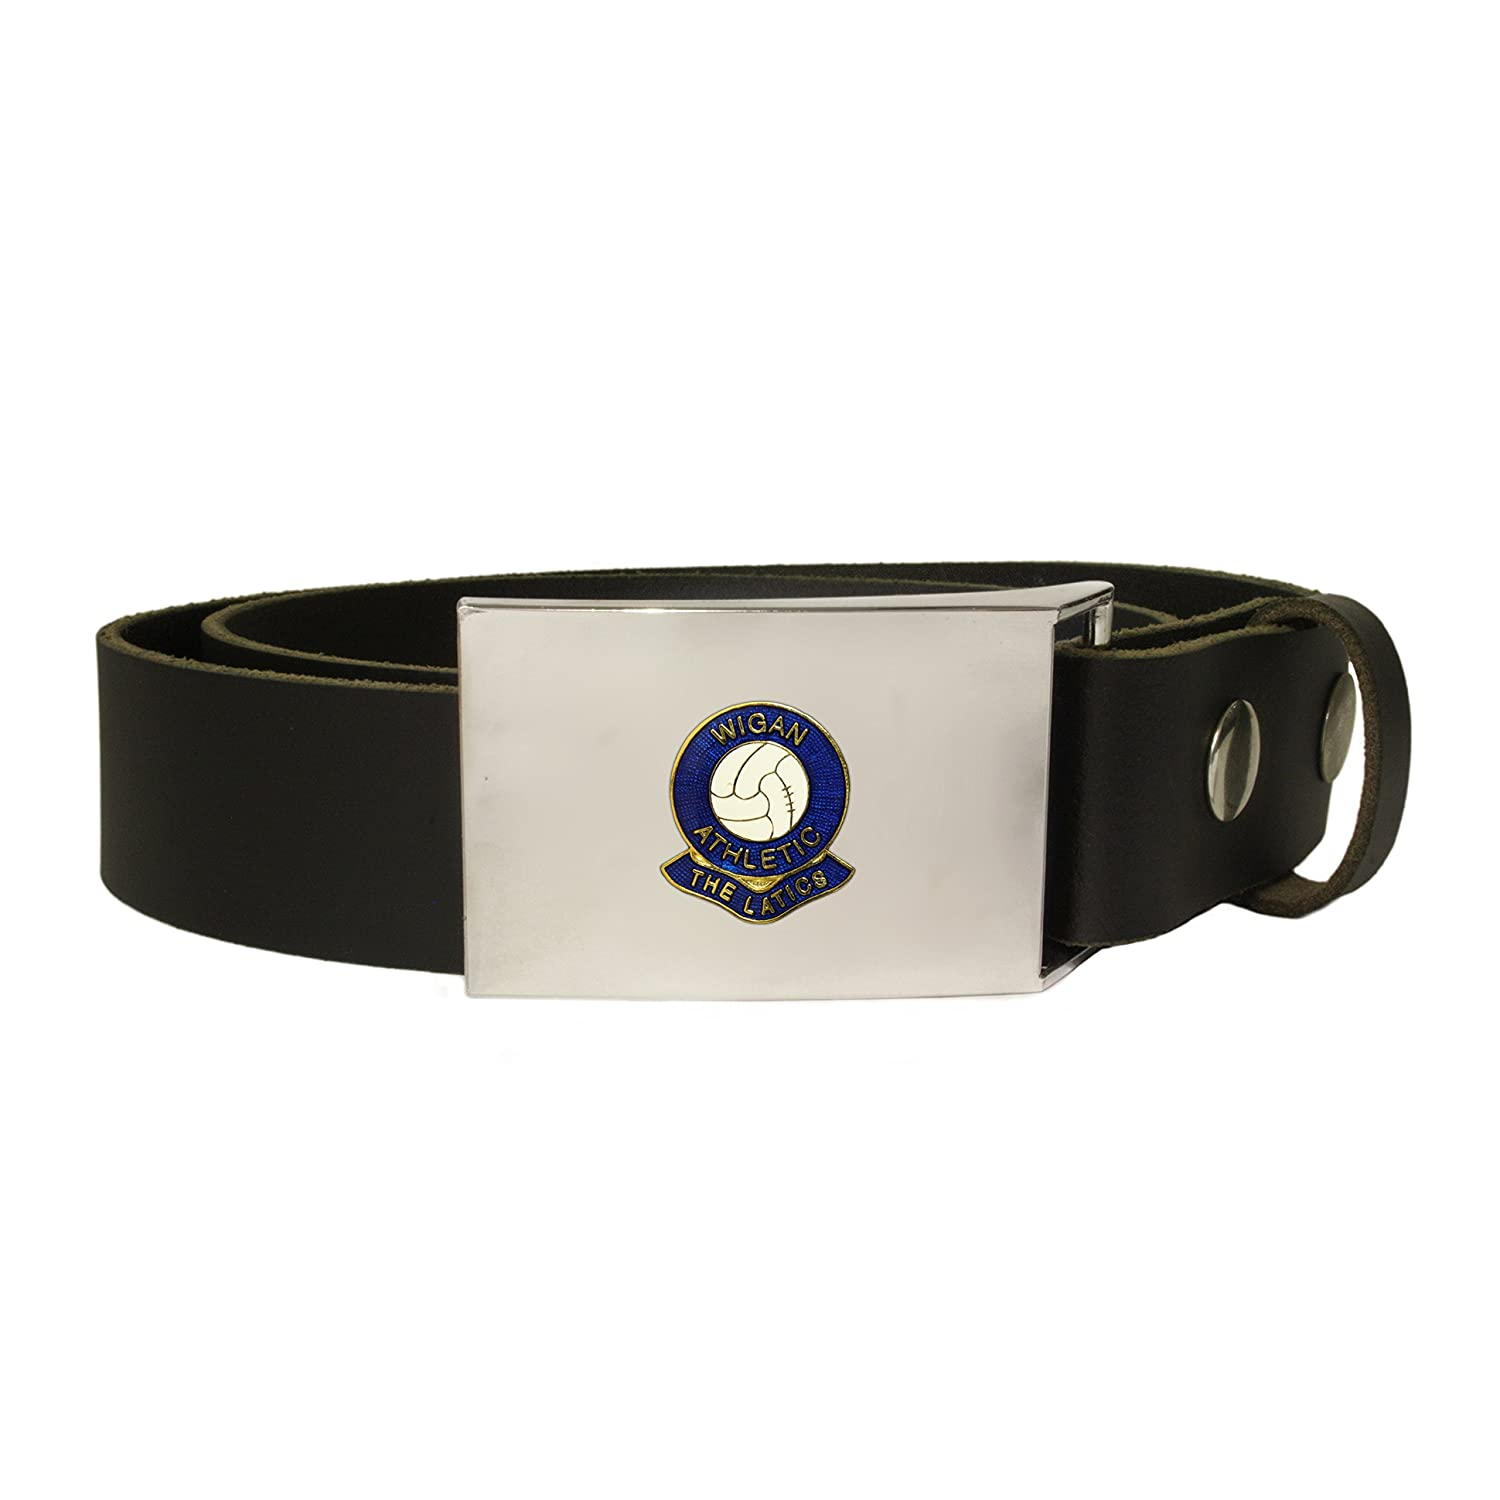 Wigan Athletic football club leather snap fit belt